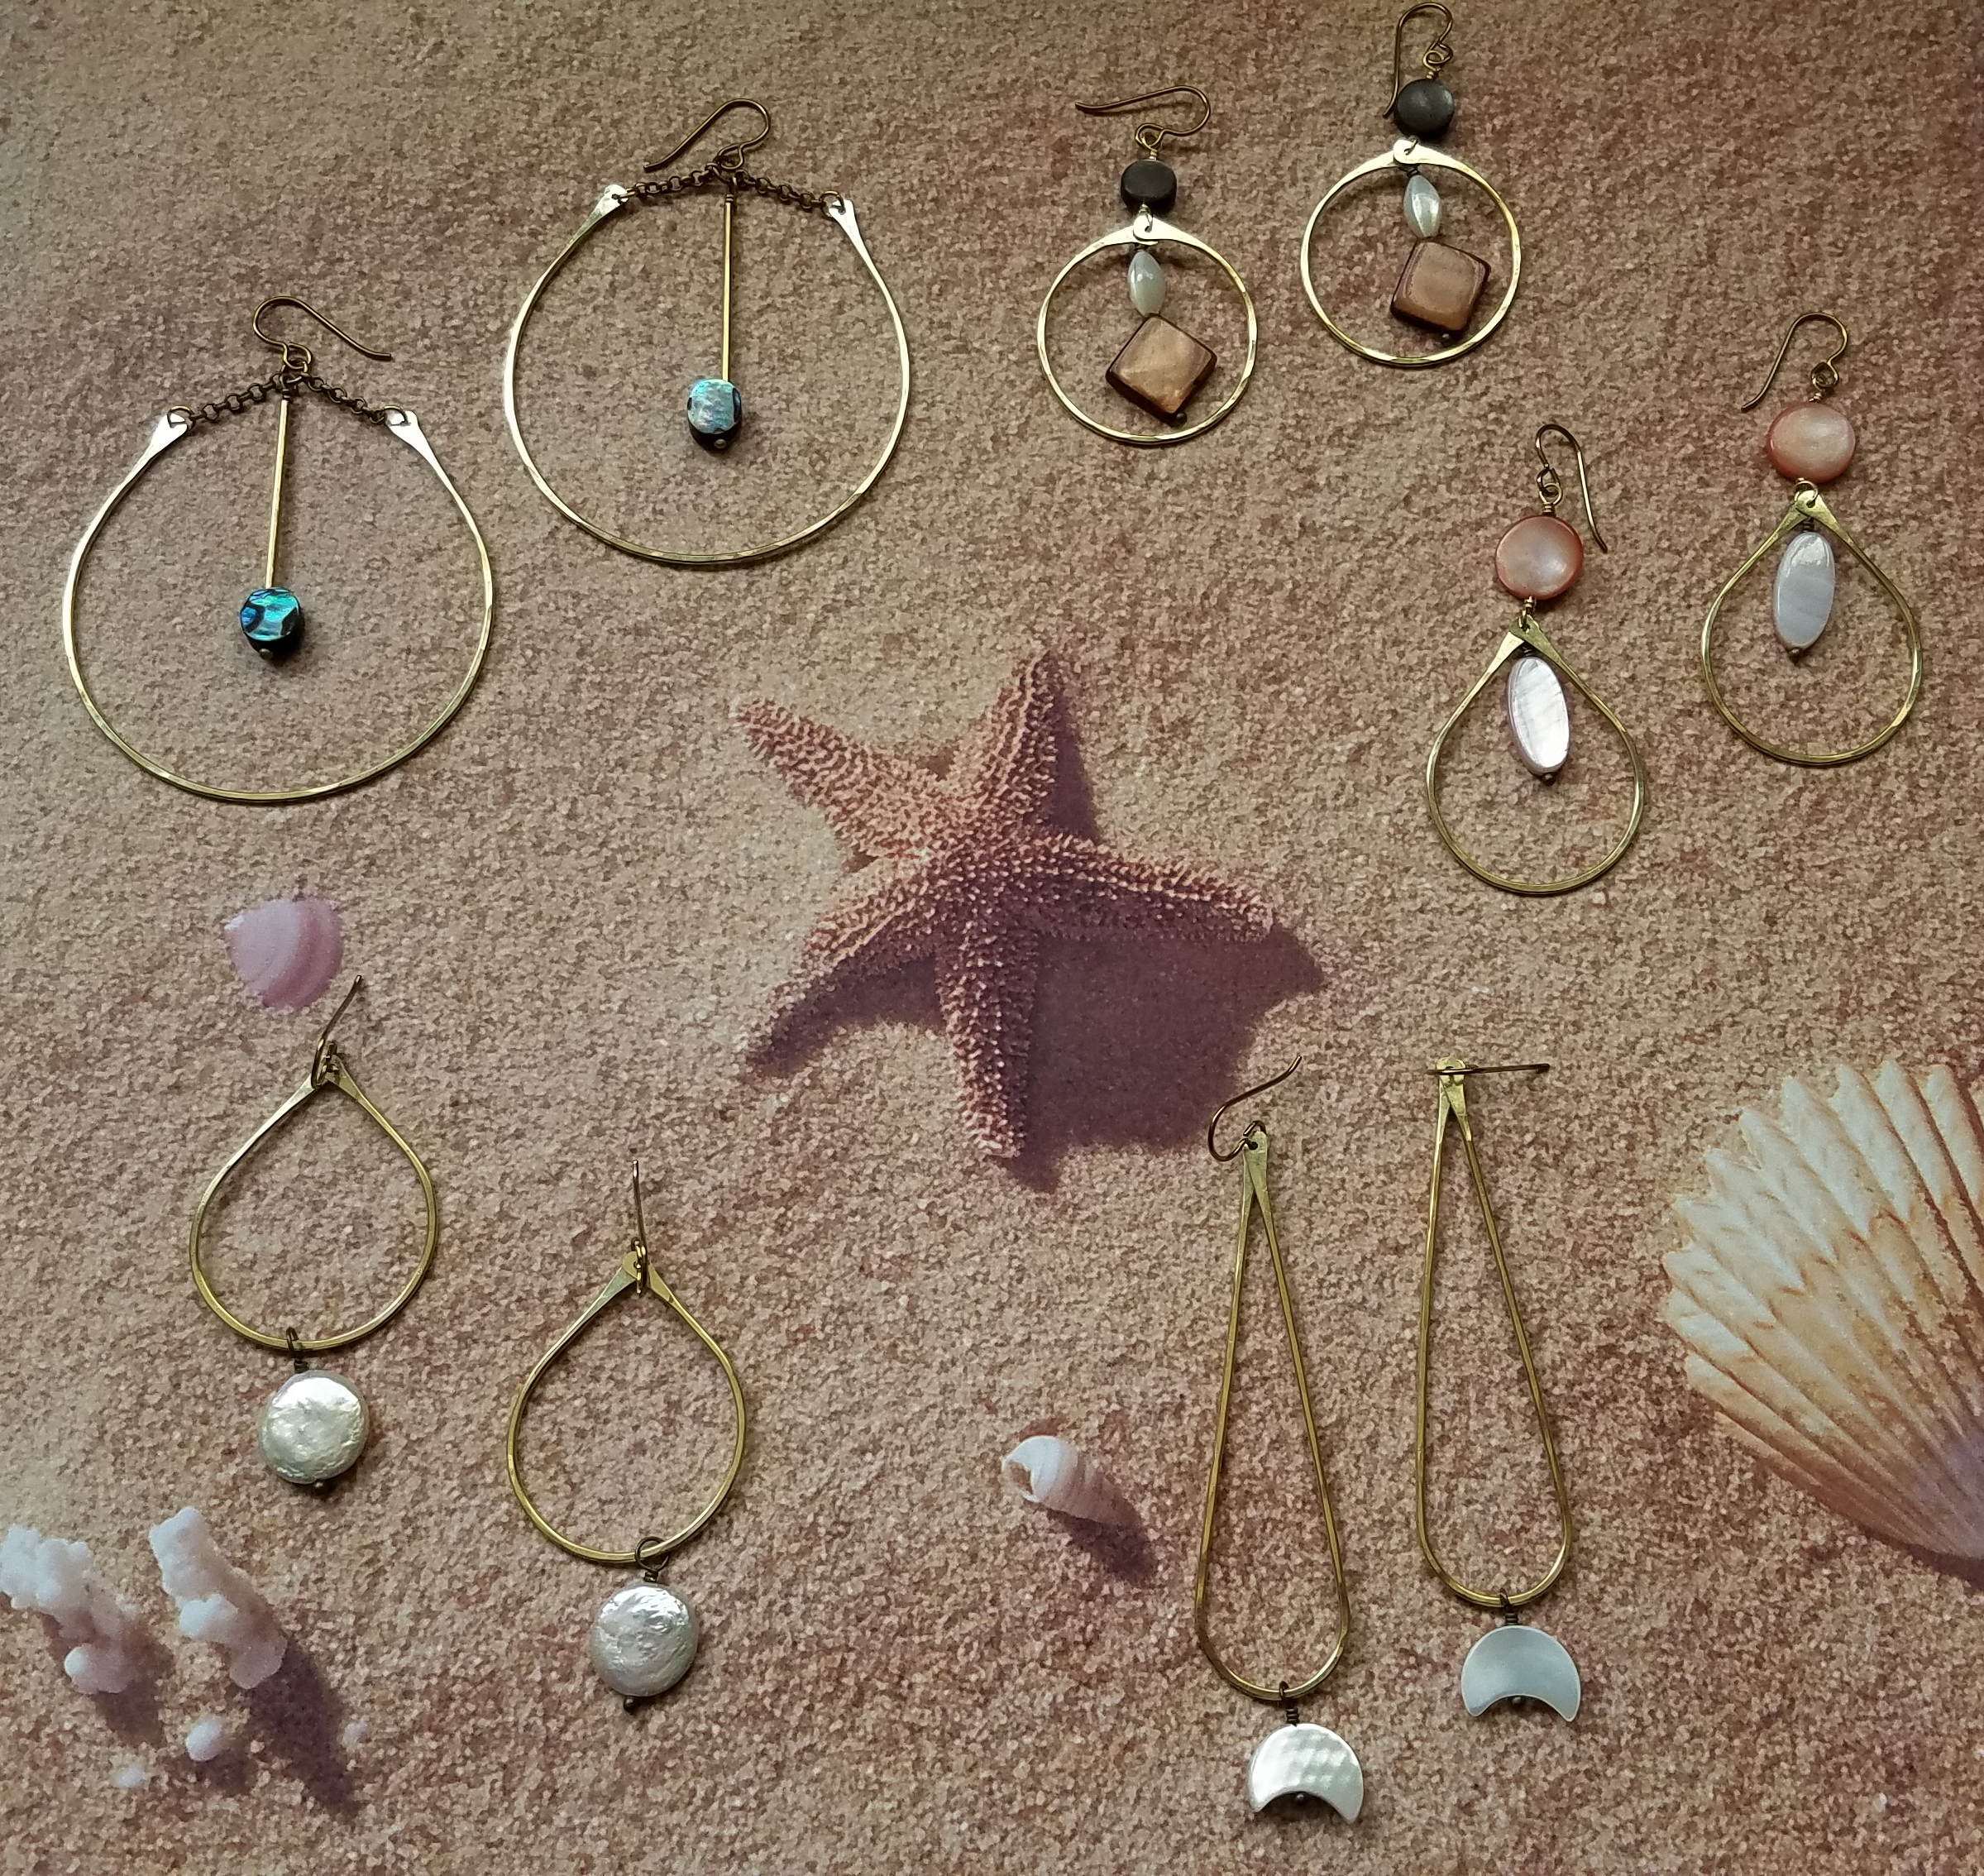 It may not be by the sea shore, but these seashell earrings will be for sale at the Market!